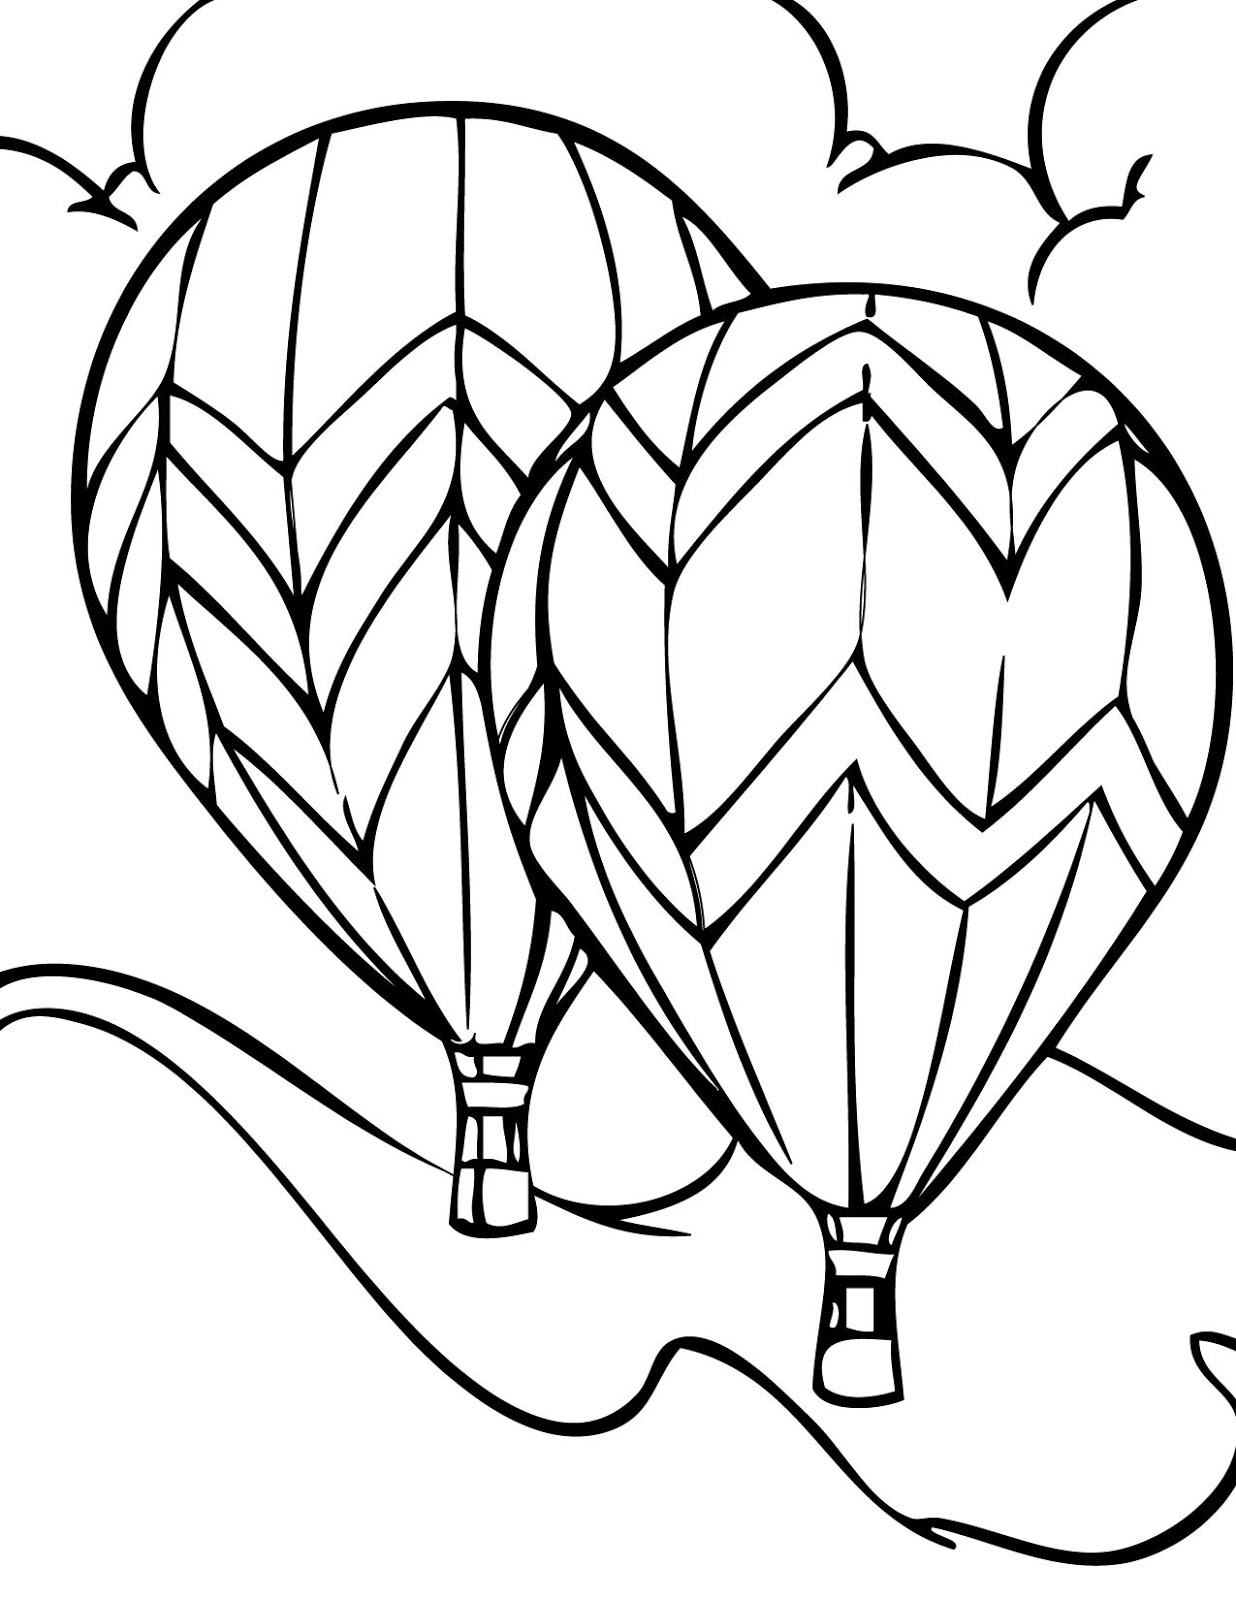 1236x1600 Balloon Designs Pictures Balloon Coloring Pages